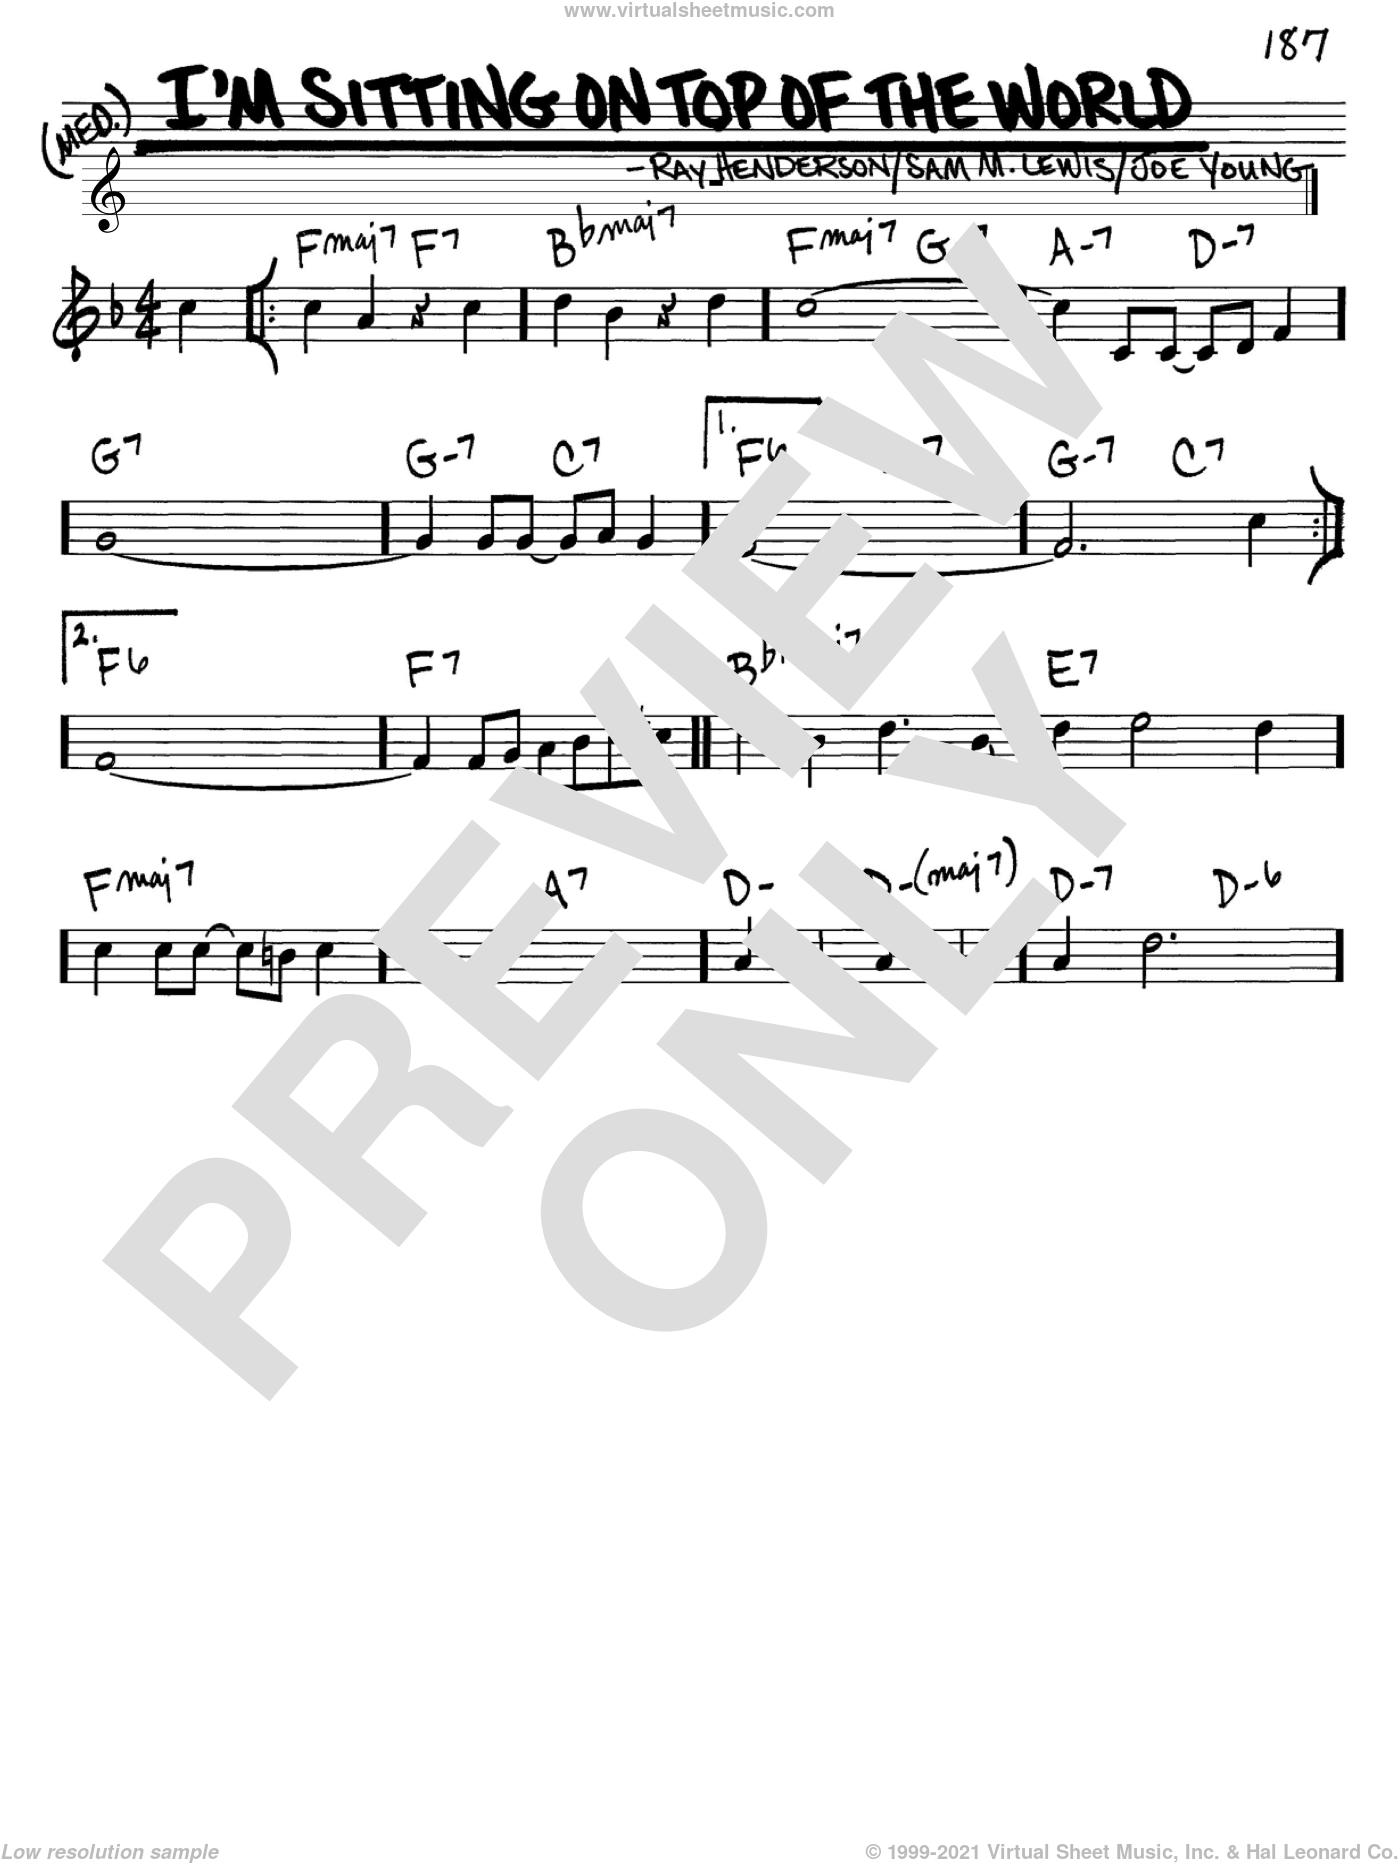 I'm Sitting On Top Of The World sheet music for voice and other instruments (C) by Ray Henderson, Joe Young and Sam Lewis. Score Image Preview.